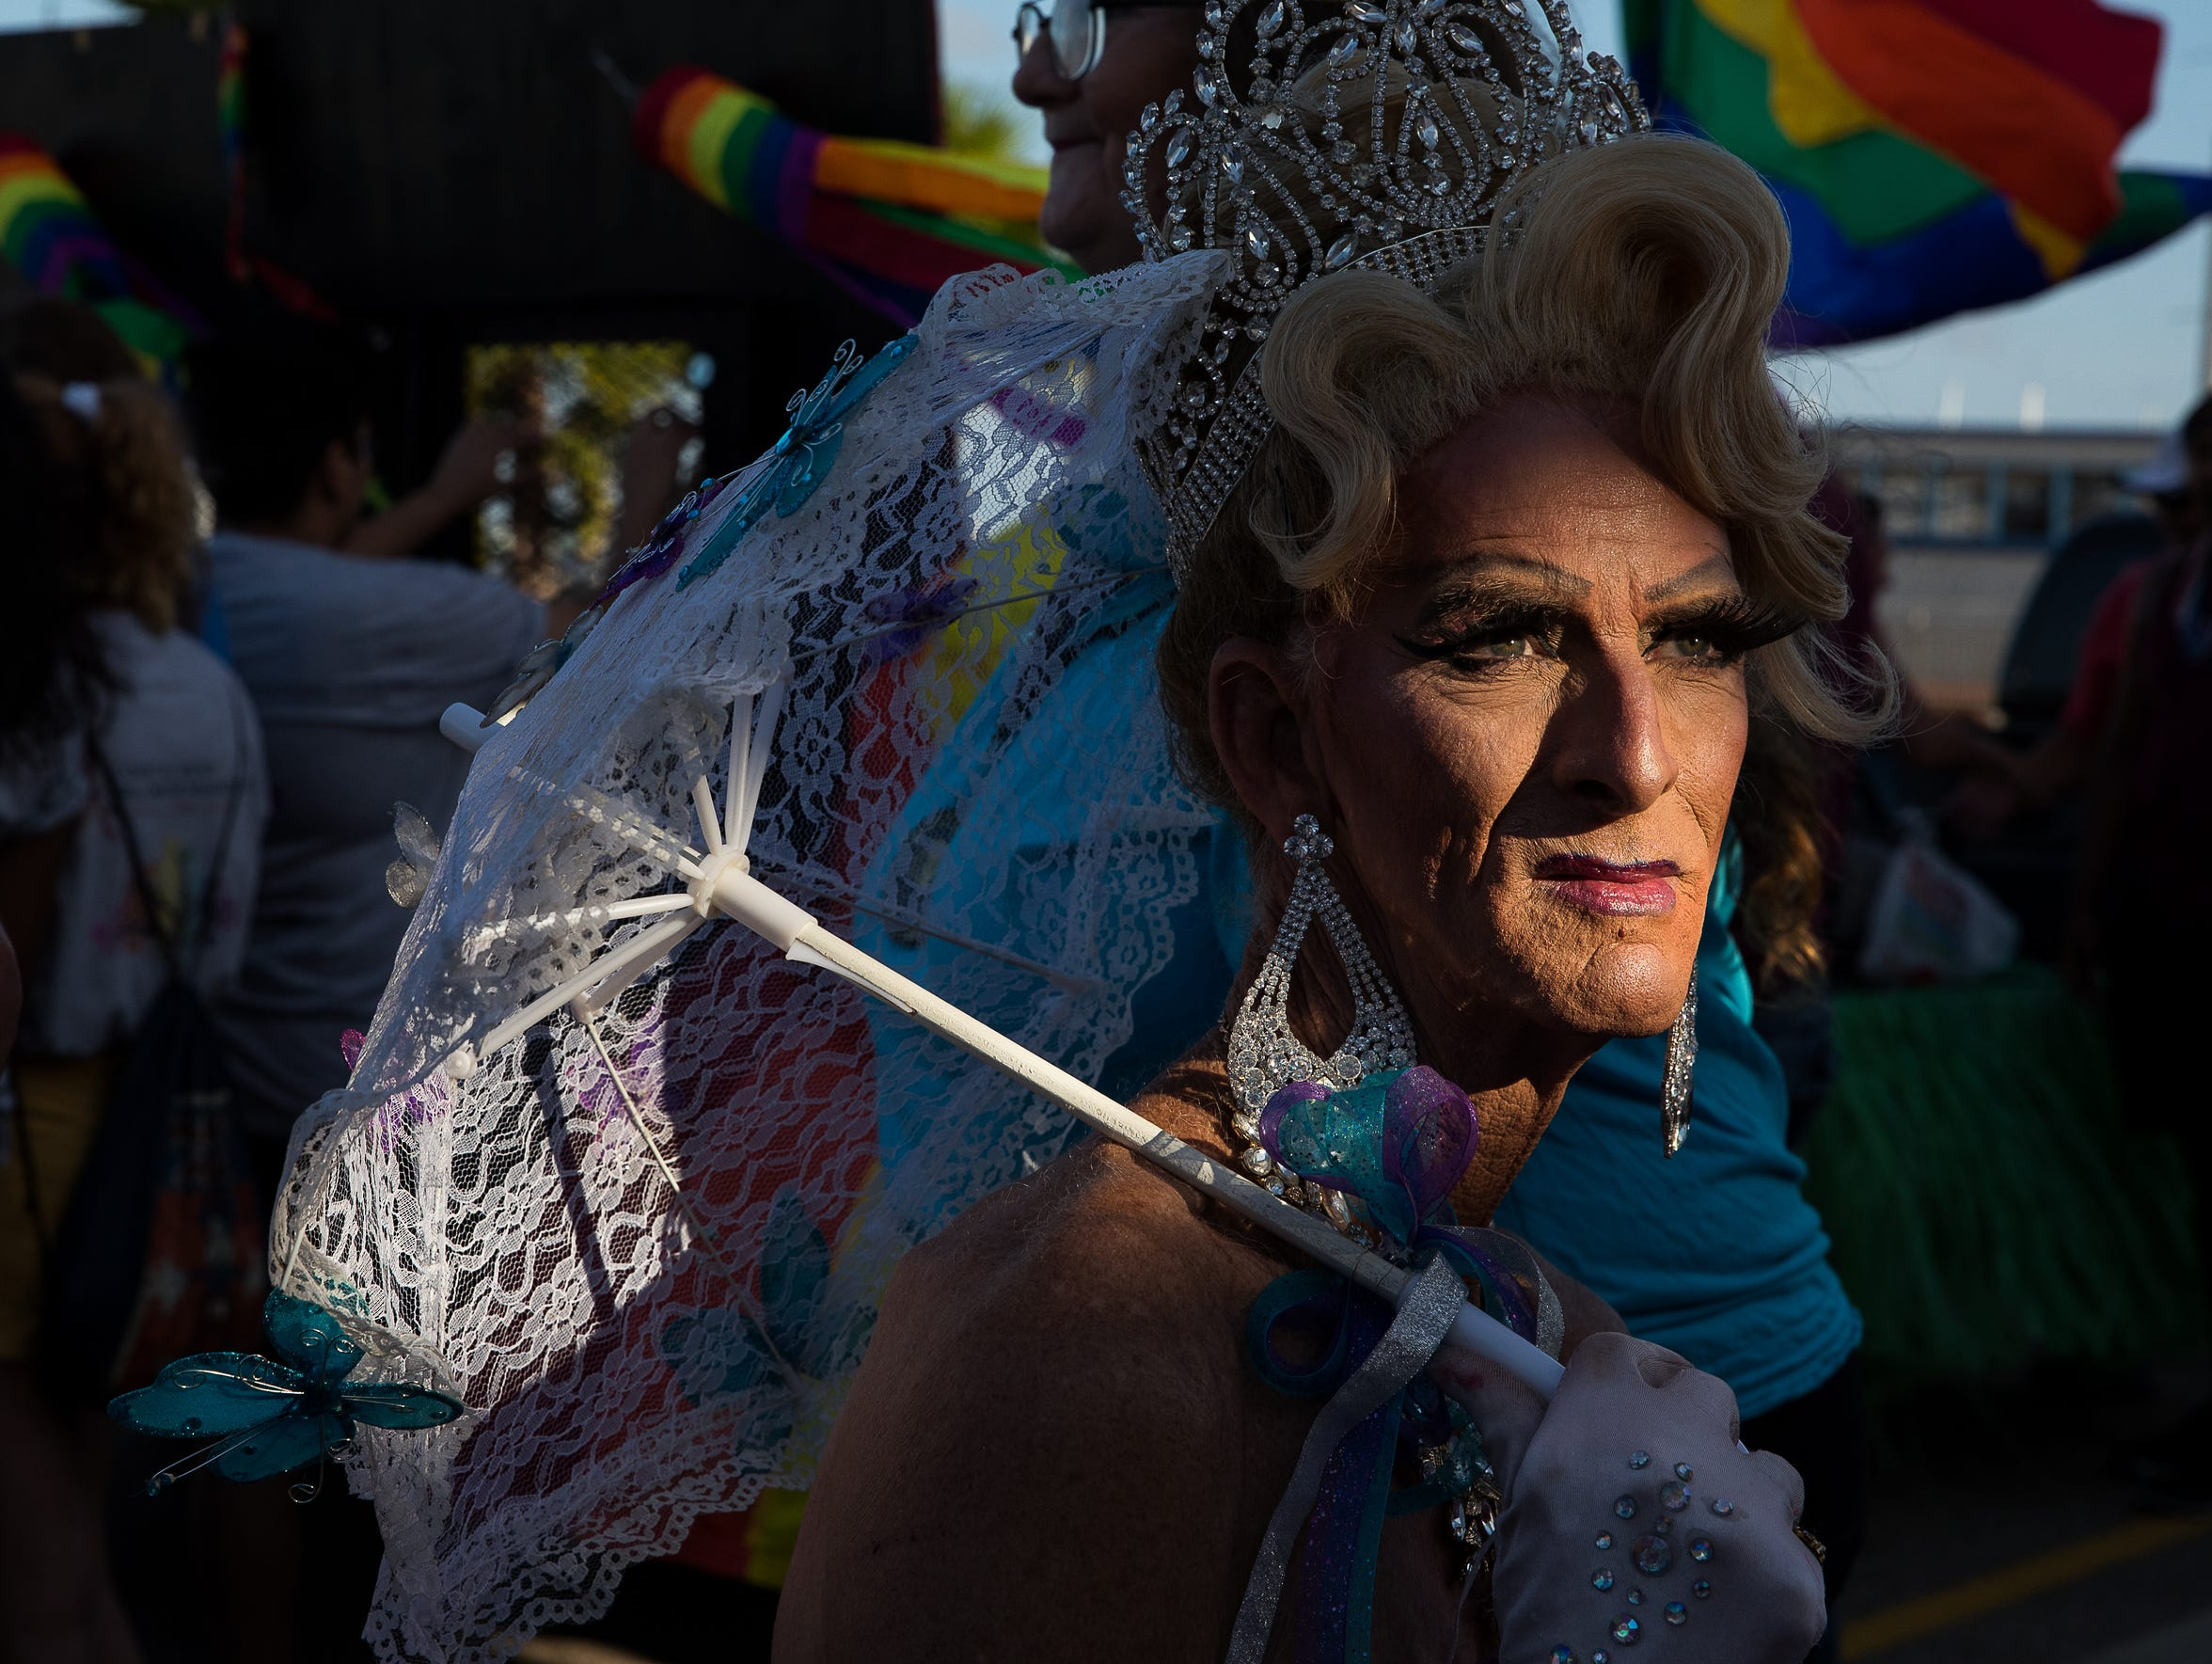 This photo by Courtney Sacco from the 2018 Corpus Christi pride parade won third place for feature photography in the Texas APME contest.